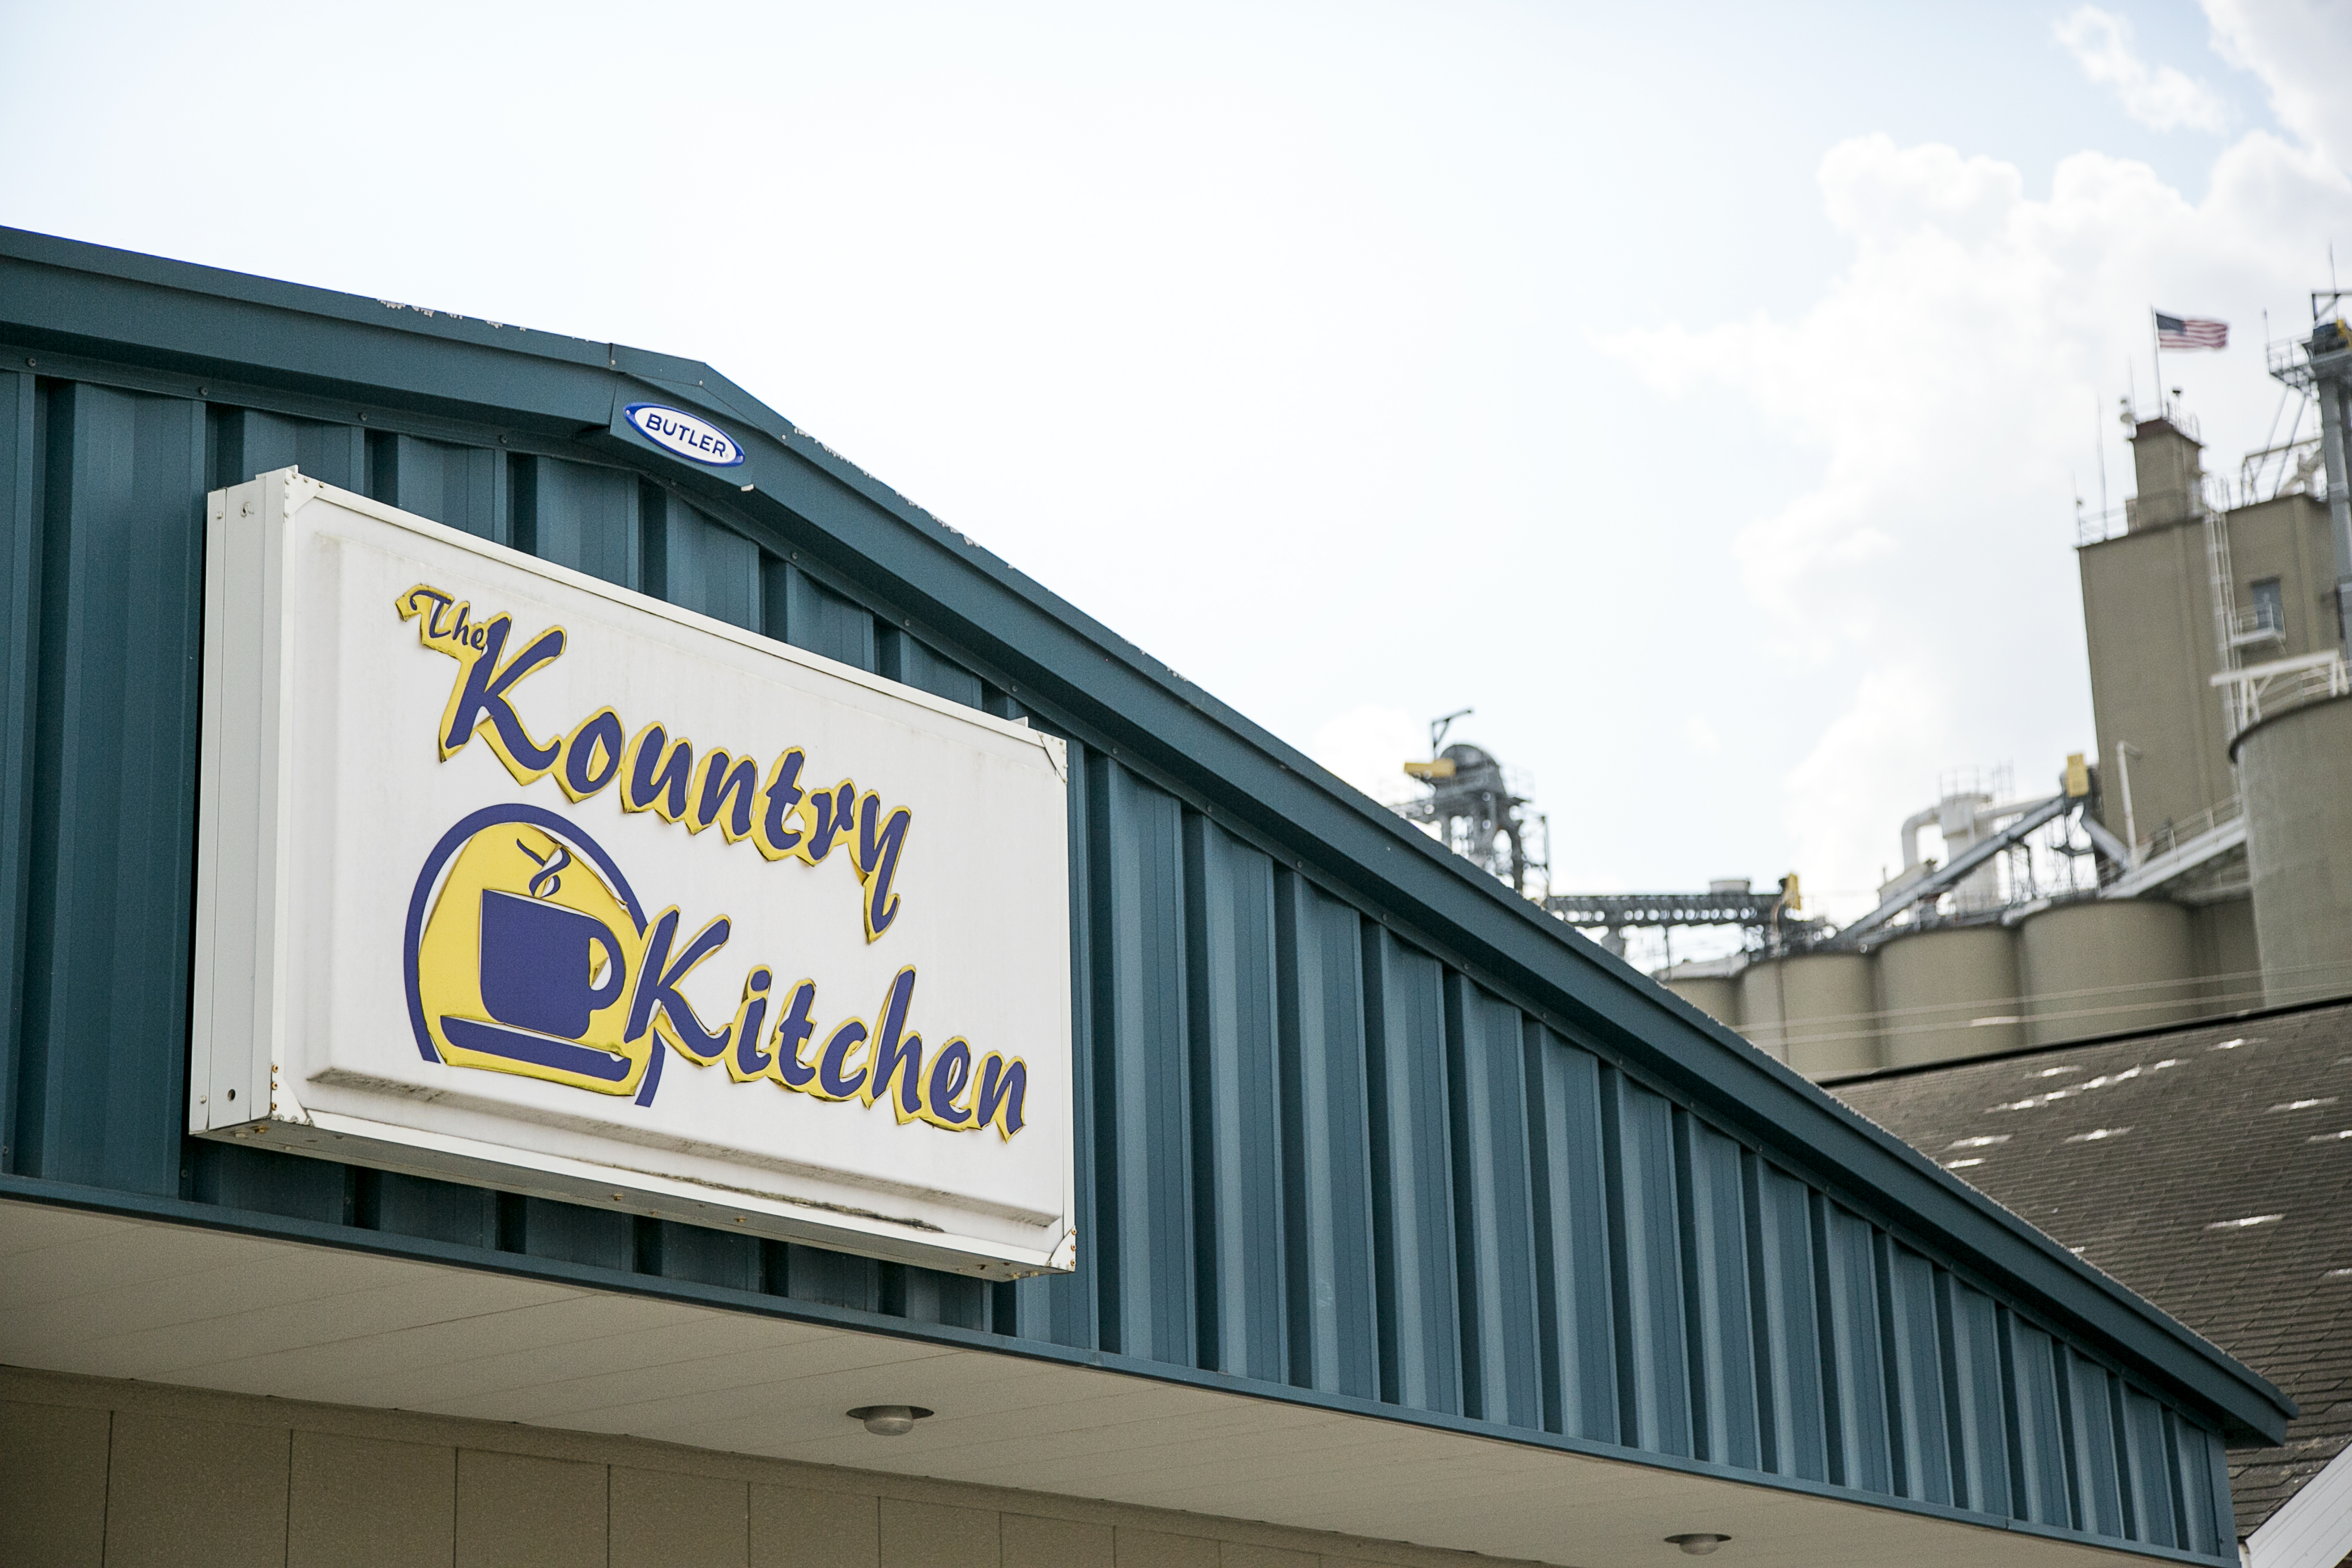 Illinois effingham county teutopolis - The Kountry Kitchen Has Been A Family Owned Restaurant Since Its Establishment In Teutopolis In 1980 The Original Restaurant Was First Housed In The